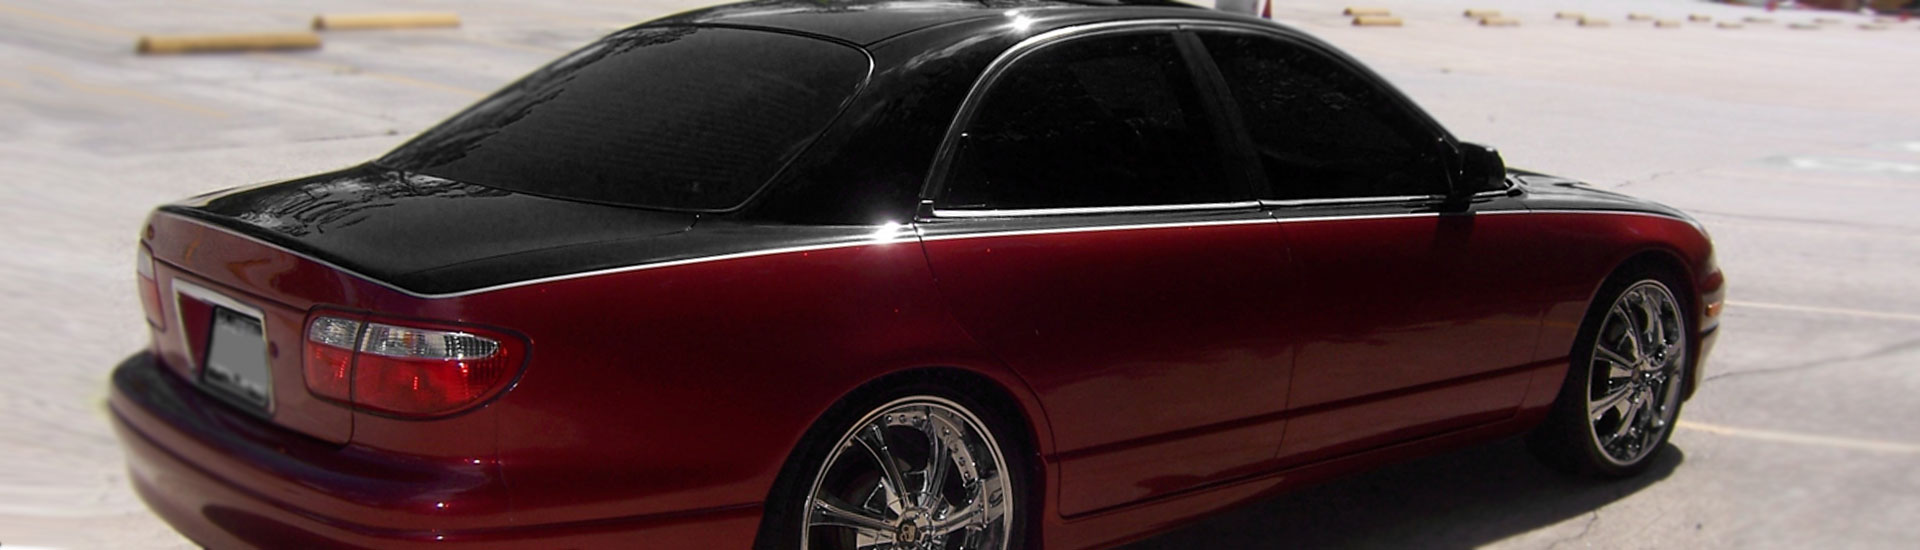 Mazda Millenia Window Tint